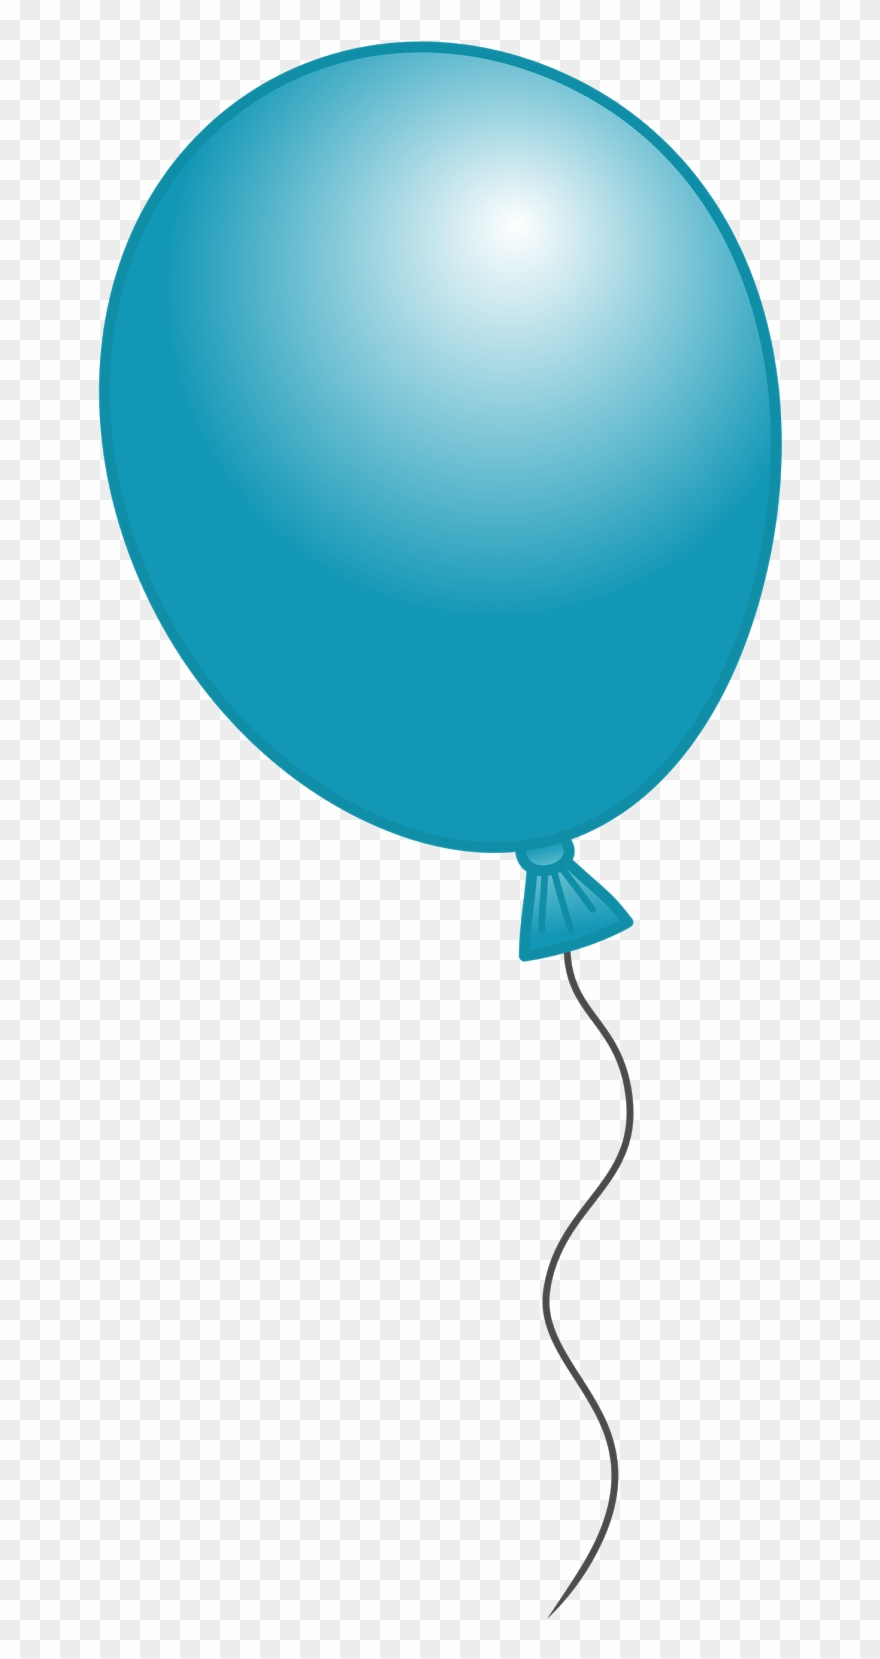 medium resolution of black balloons cliparts free download clip art free clipart balloon transparent background png download